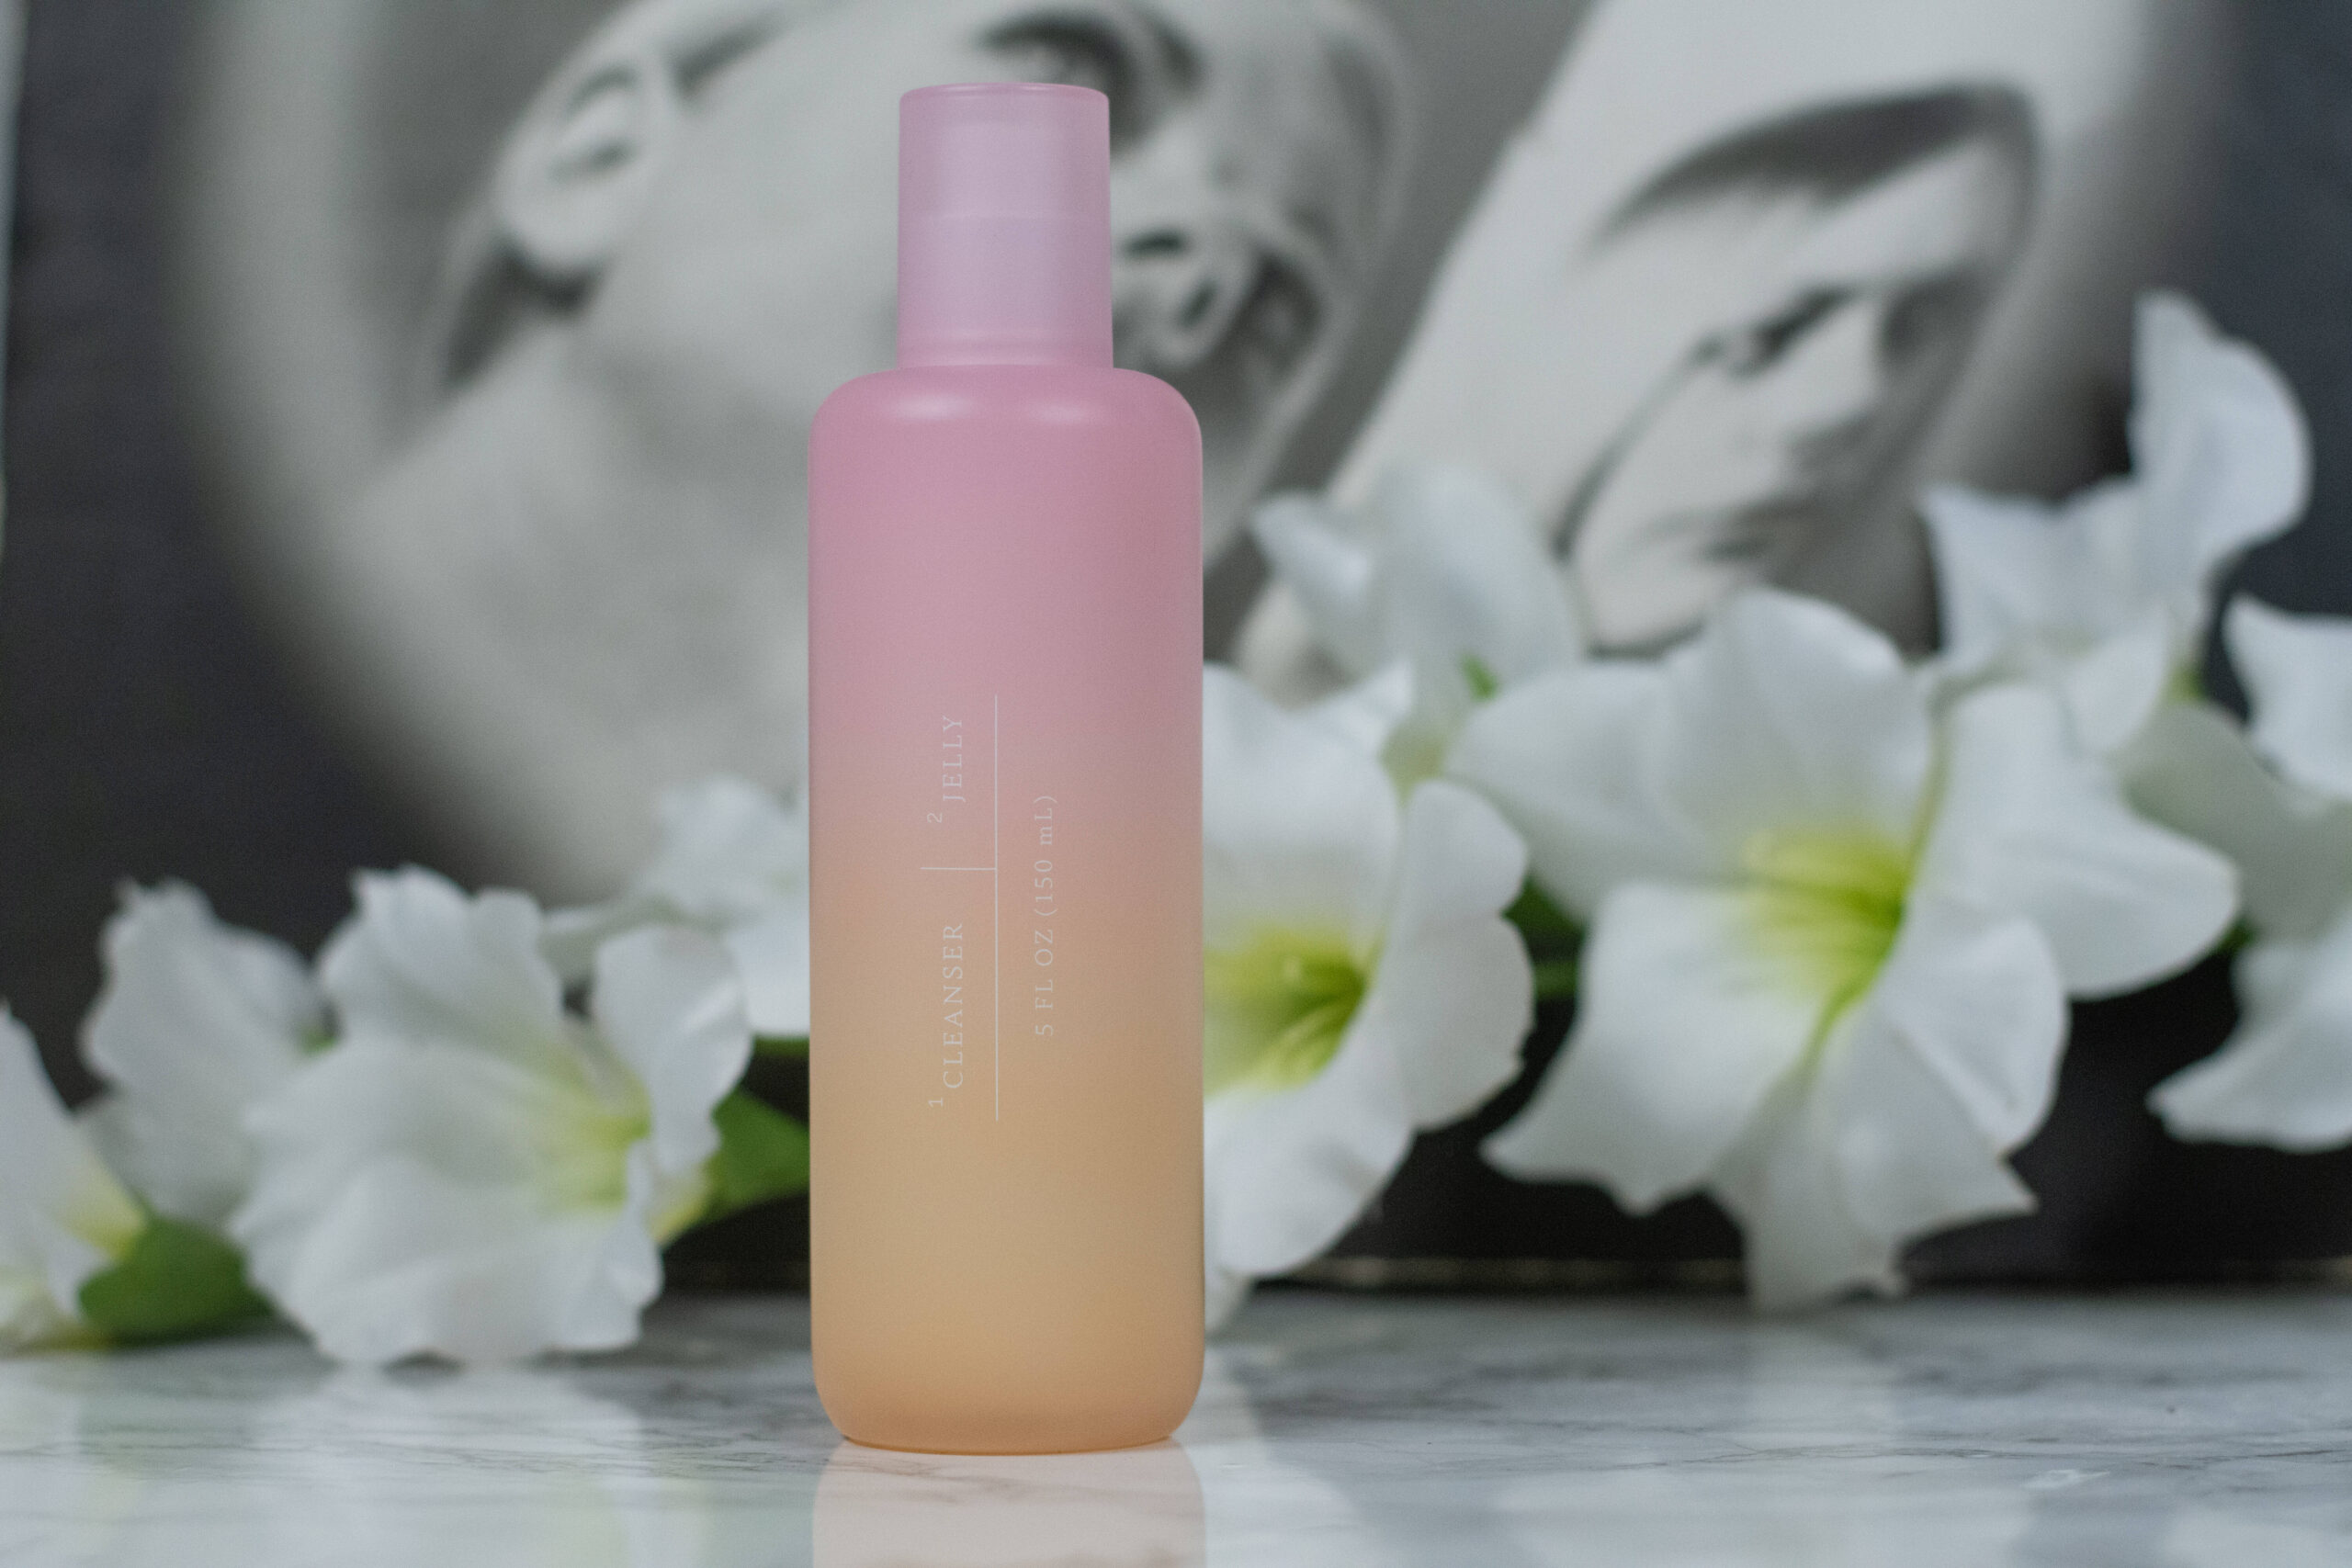 Function of Beauty Cleanser